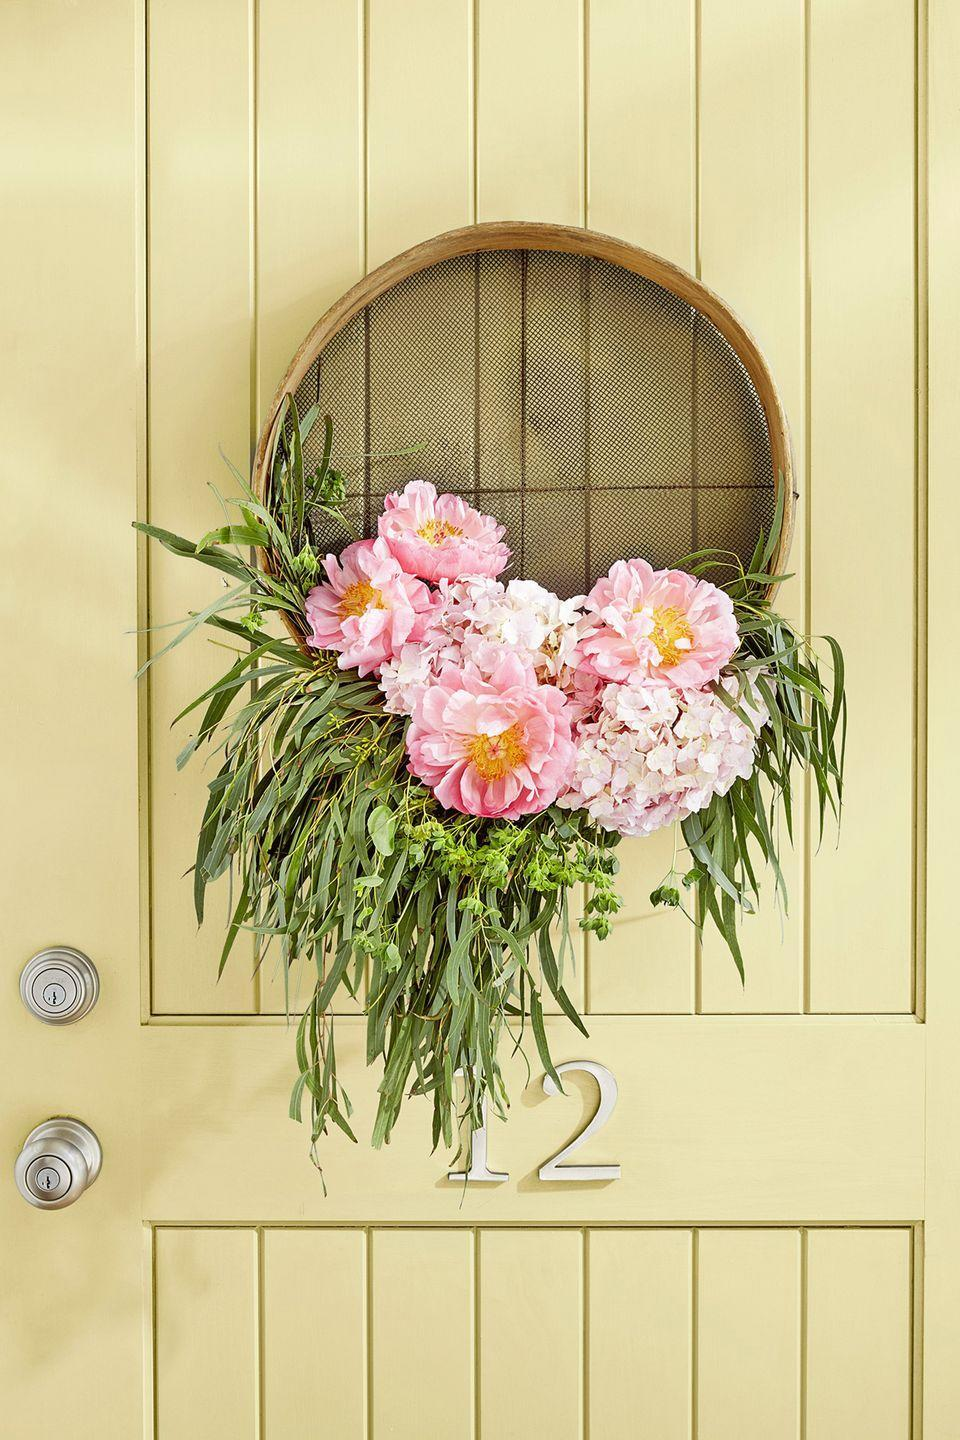 "<p>Put a vintage grain sifter to good use by making it into fresh home decor. Take floral tubes, fill with water, insert flowers, and attach to the sifter with wire. Loop the wire to hang on the front door.</p><p><a class=""link rapid-noclick-resp"" href=""https://go.redirectingat.com?id=74968X1596630&url=https%3A%2F%2Fwww.etsy.com%2Flisting%2F722850955%2Fbig-10antique-wooden-sieve-vintage&sref=https%3A%2F%2Fwww.countryliving.com%2Fdiy-crafts%2Fg4395%2Fsummer-wreaths%2F"" rel=""nofollow noopener"" target=""_blank"" data-ylk=""slk:SHOP GRAIN SIFTERS"">SHOP GRAIN SIFTERS</a></p>"